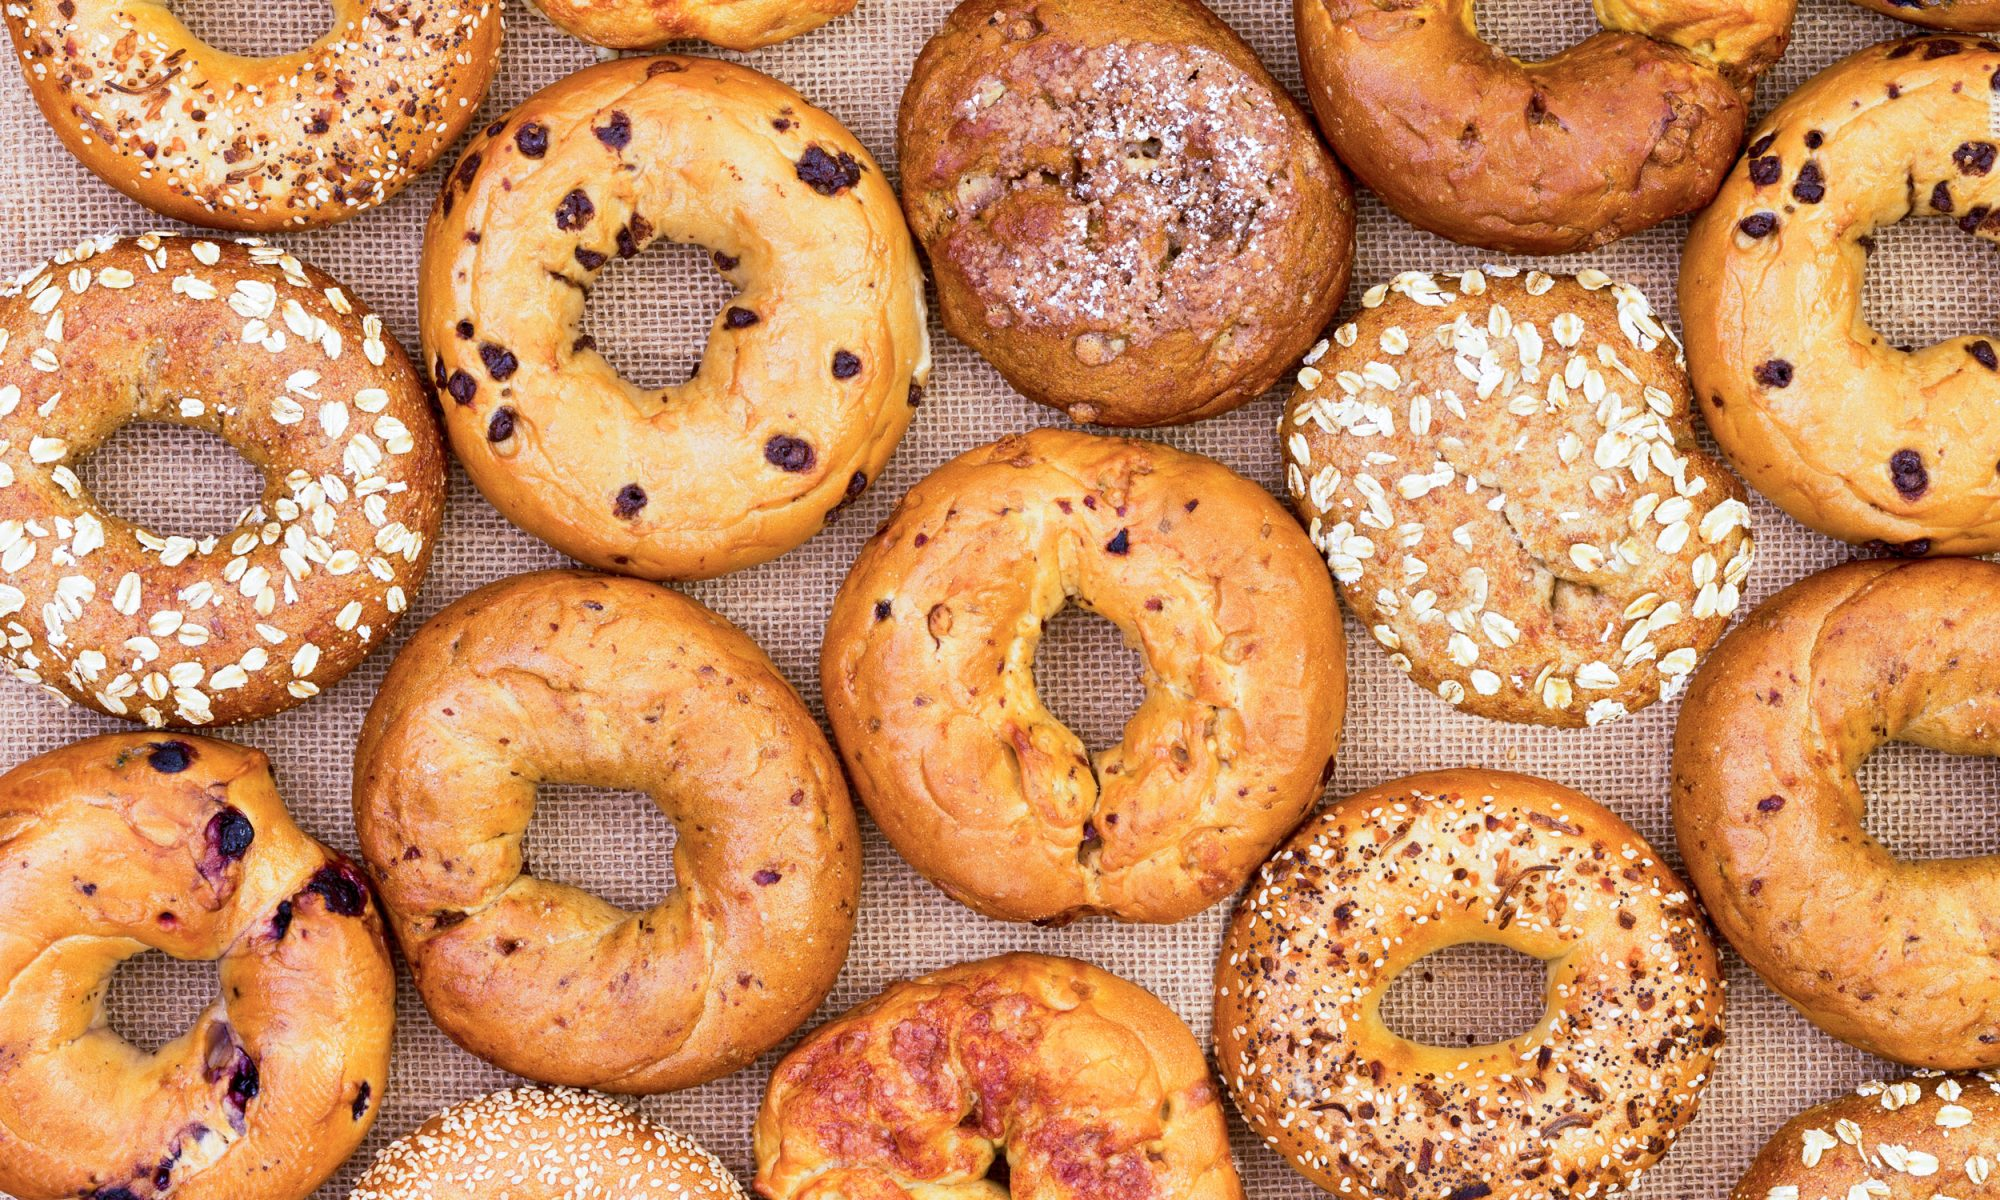 EC: The Unlikely Bagel Star of North Carolina